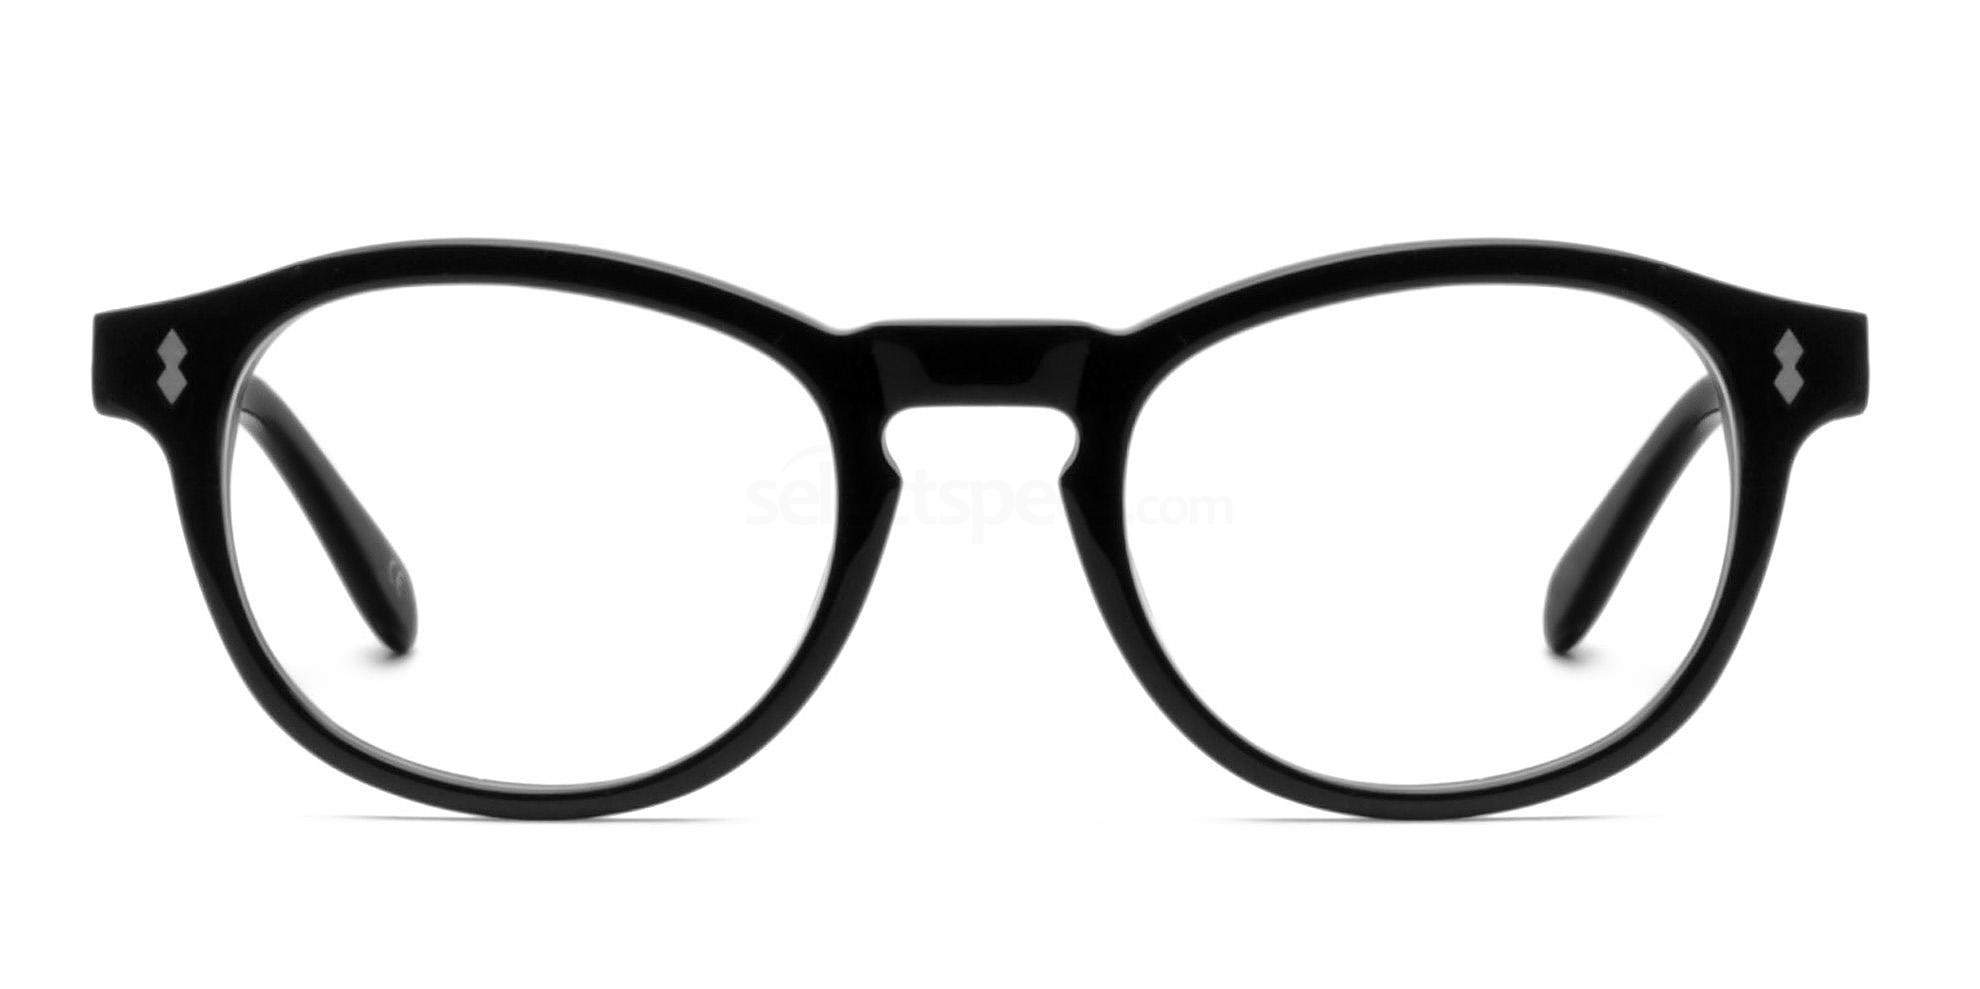 Hallmark SD2114 glasses